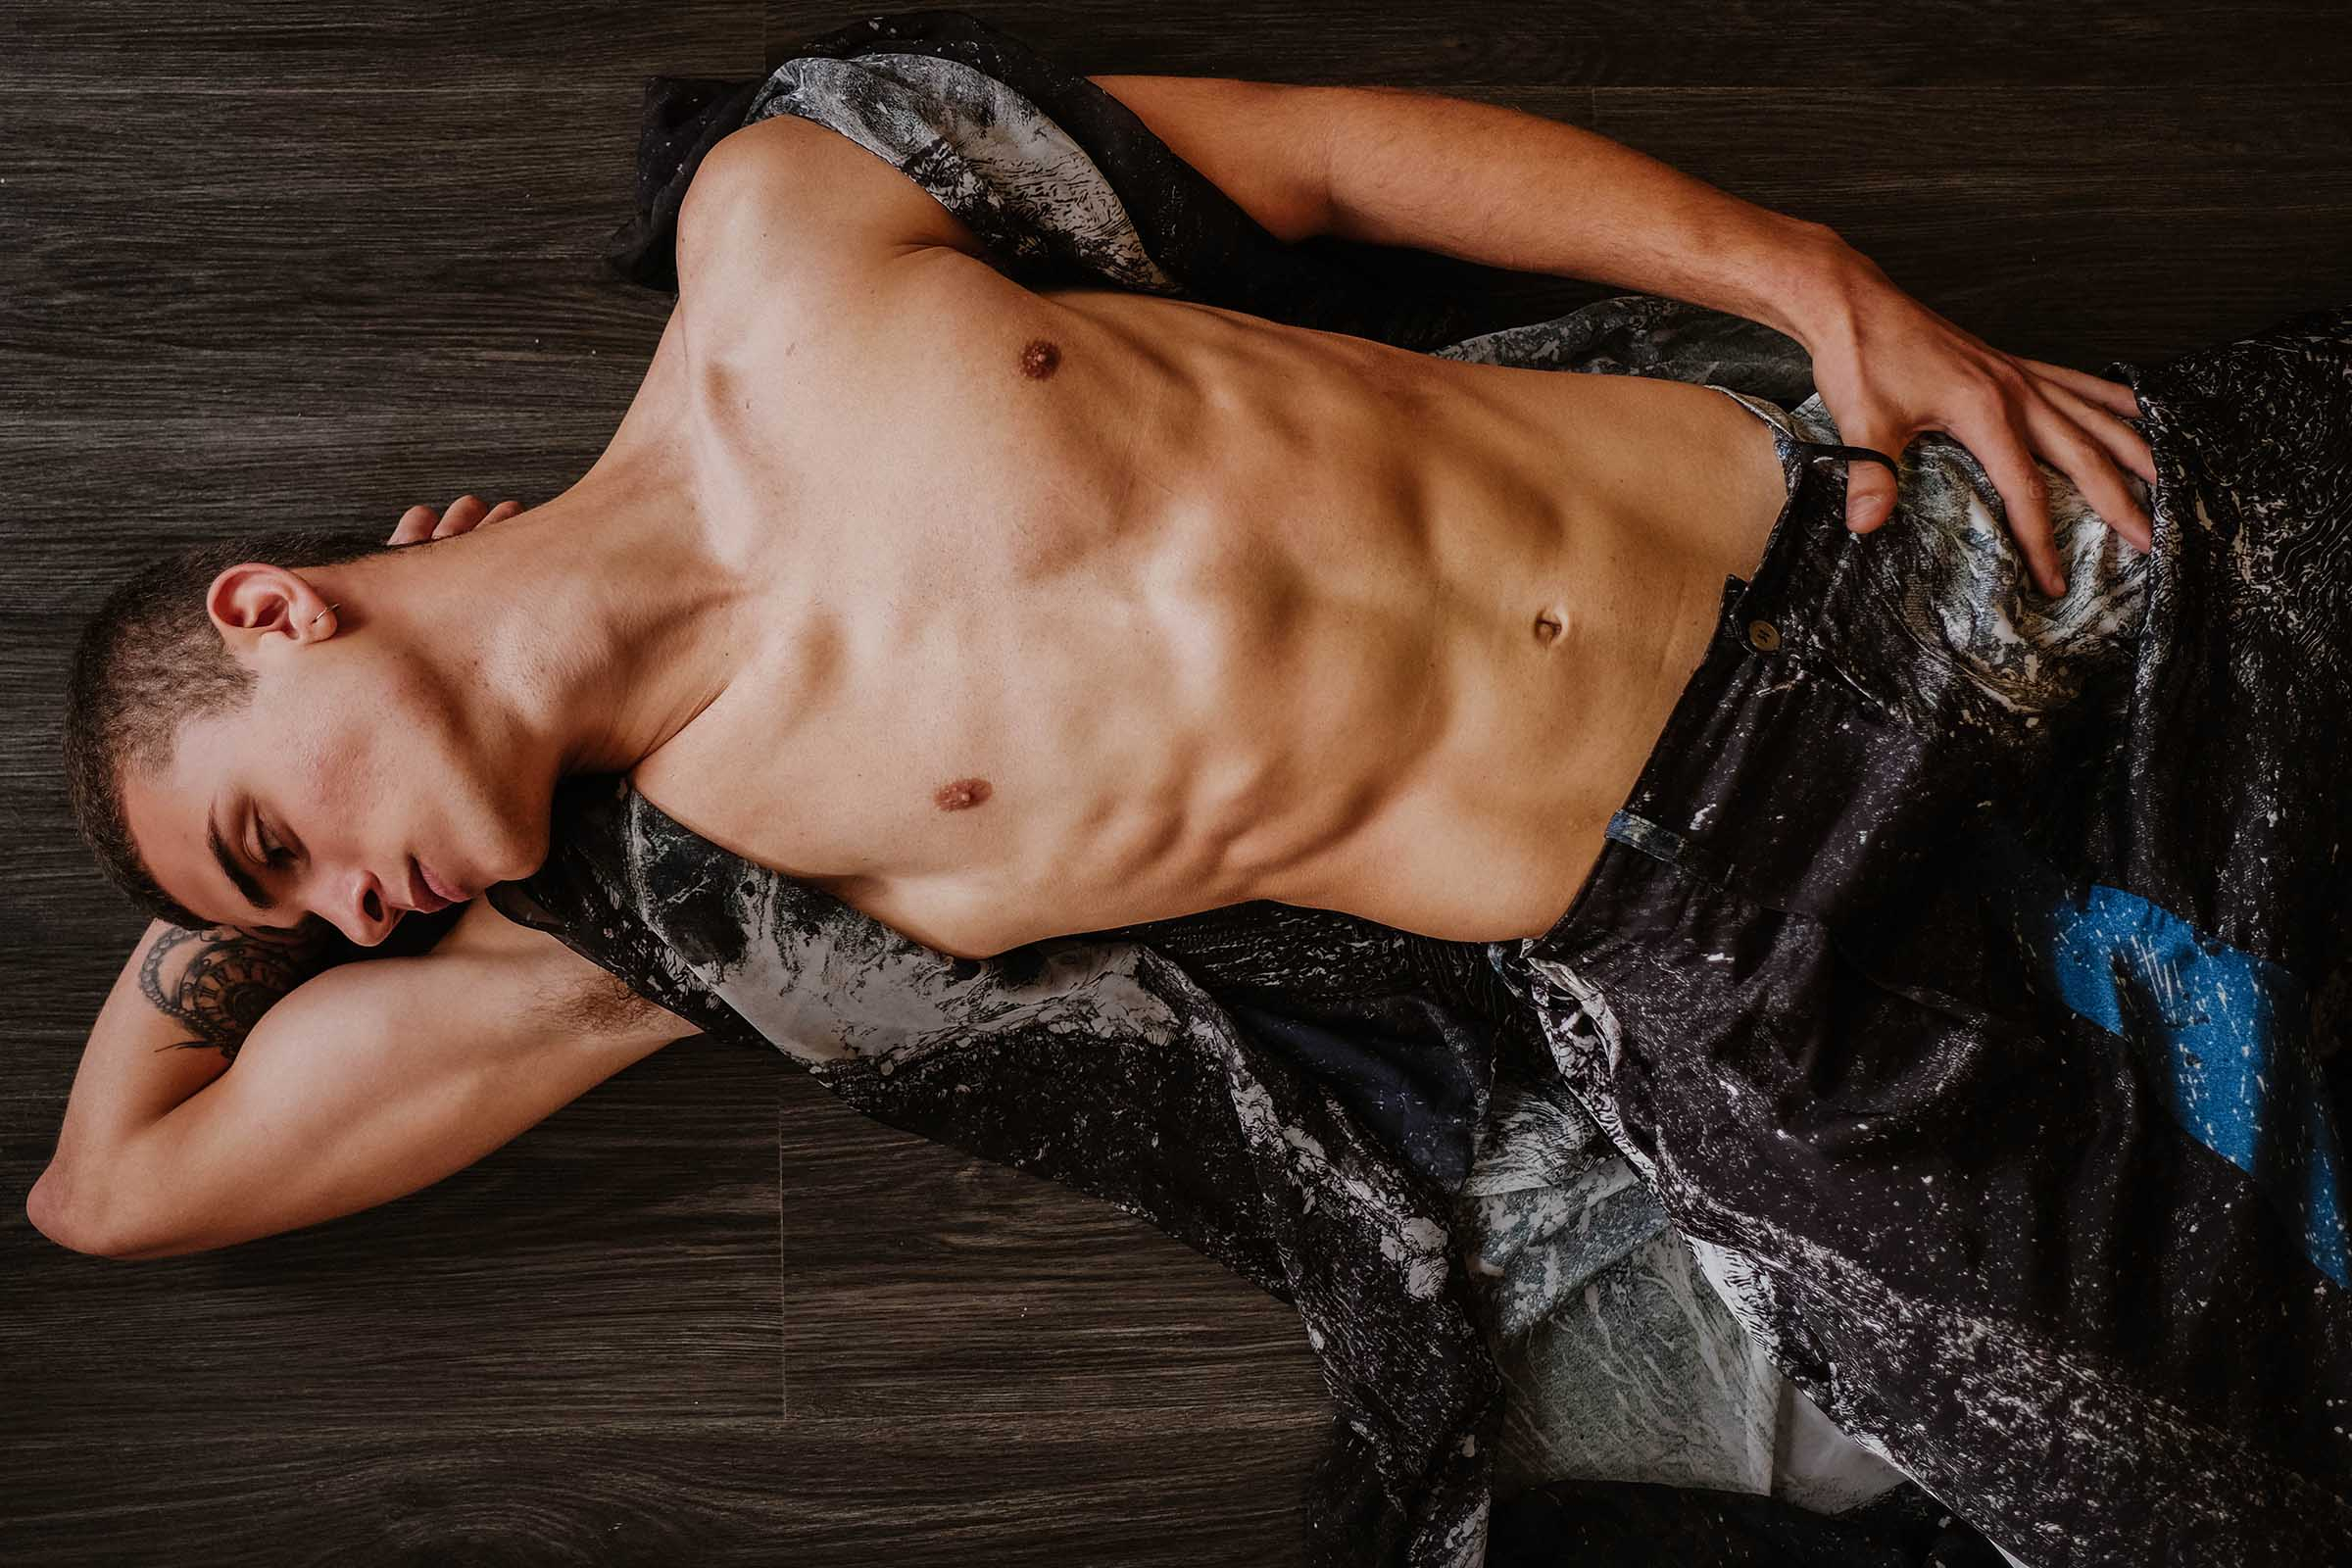 Jesus Henrique by Wittaya Finn Sumranklang for Brazilian Male Model